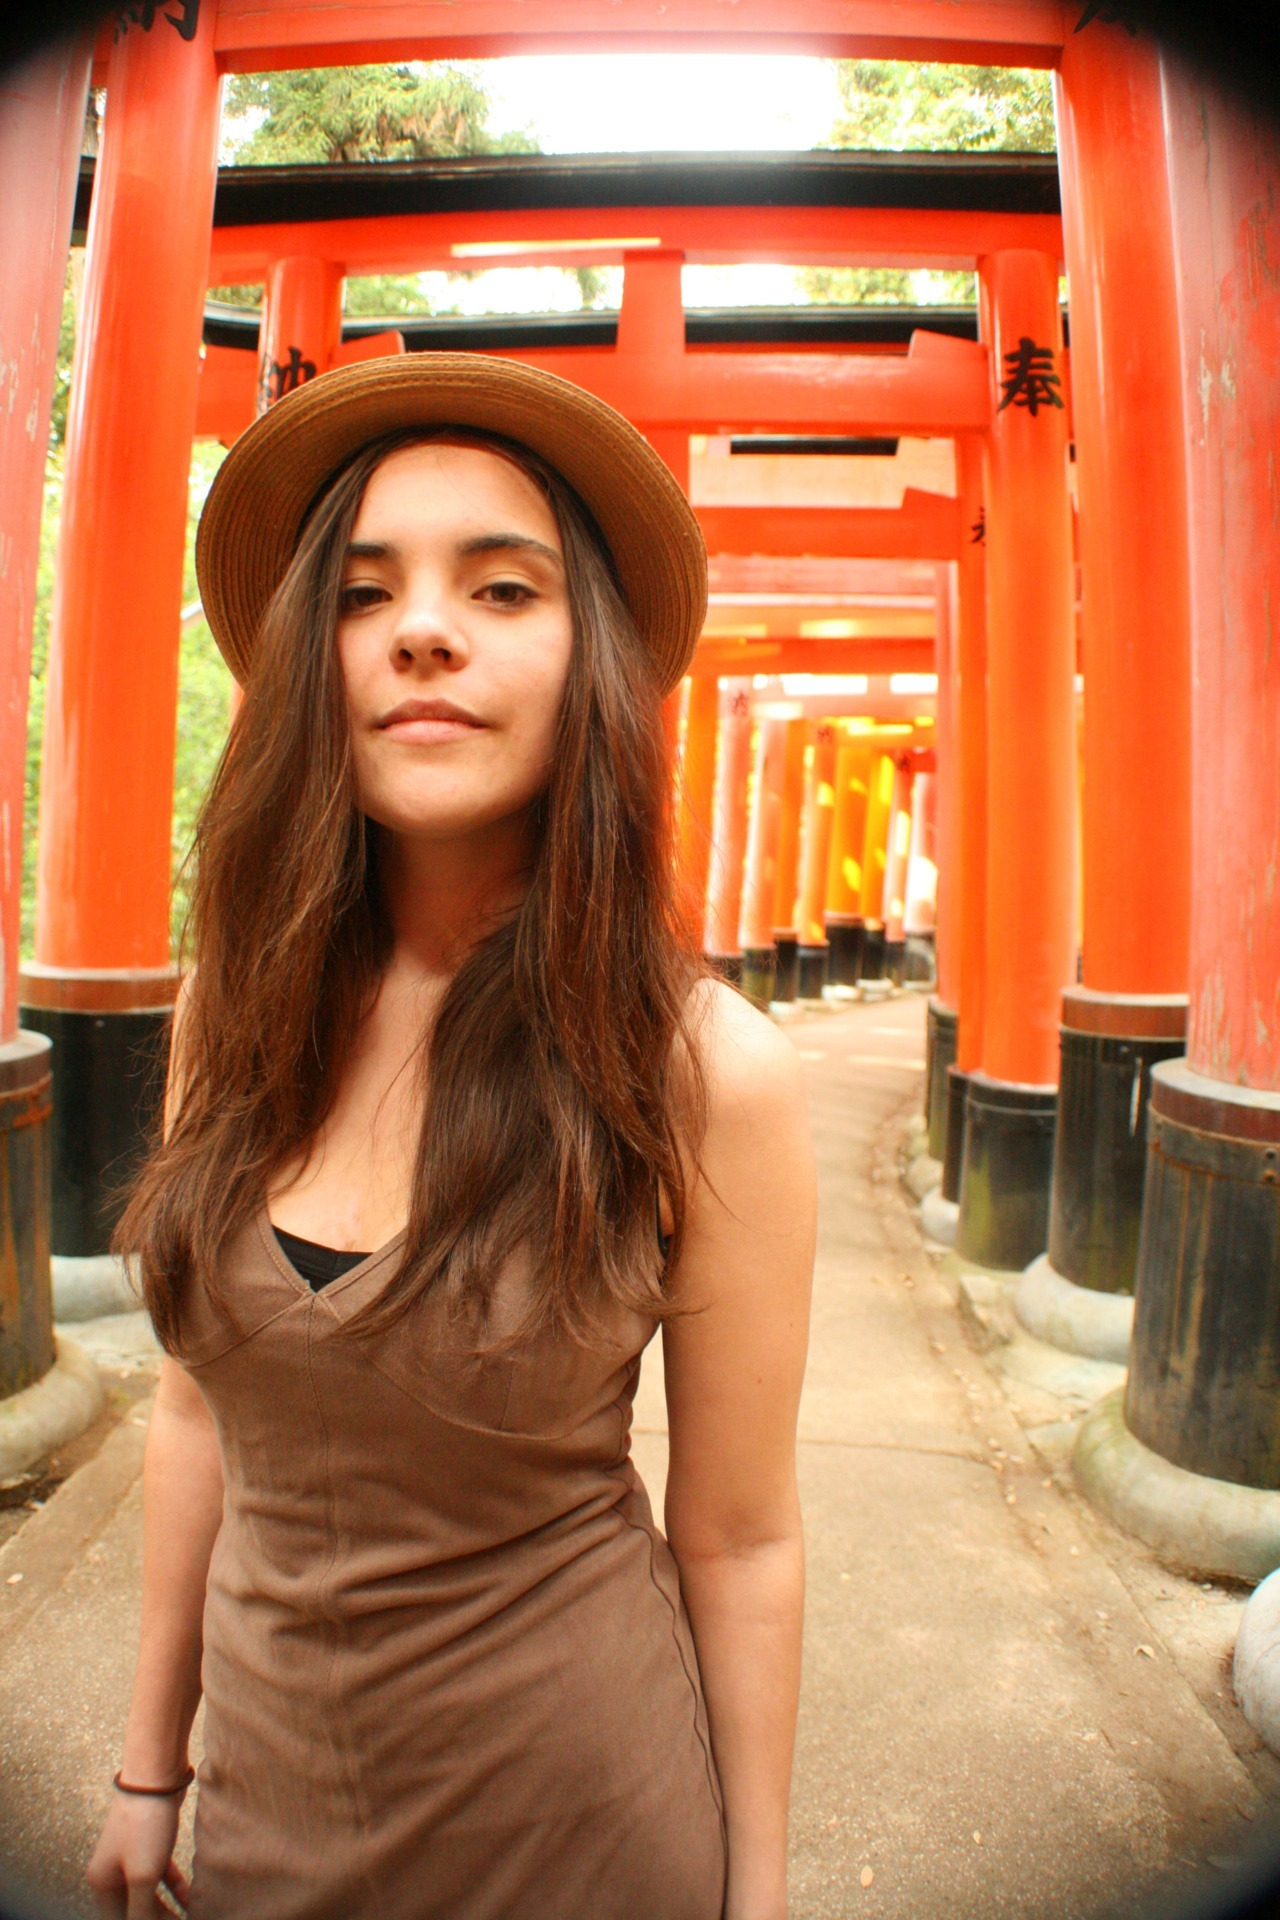 Kiki at Fushimi Inari Taisha (Sunday May 13, 2012)